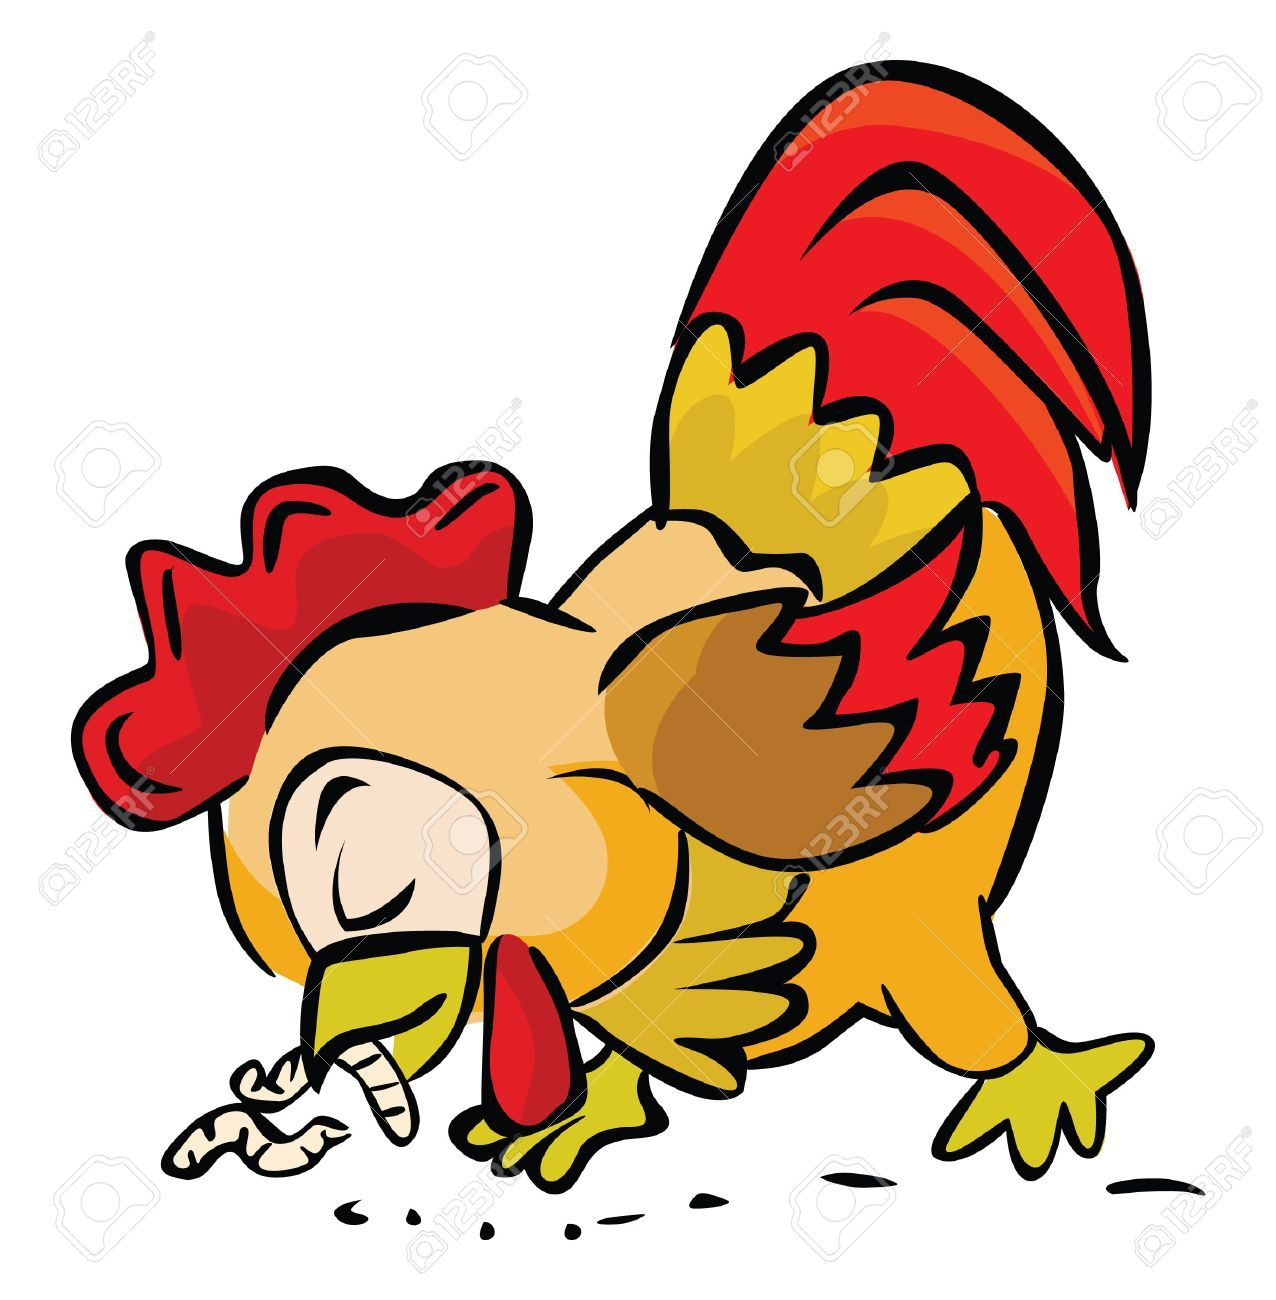 Chicken eating clipart 5 » Clipart Portal.